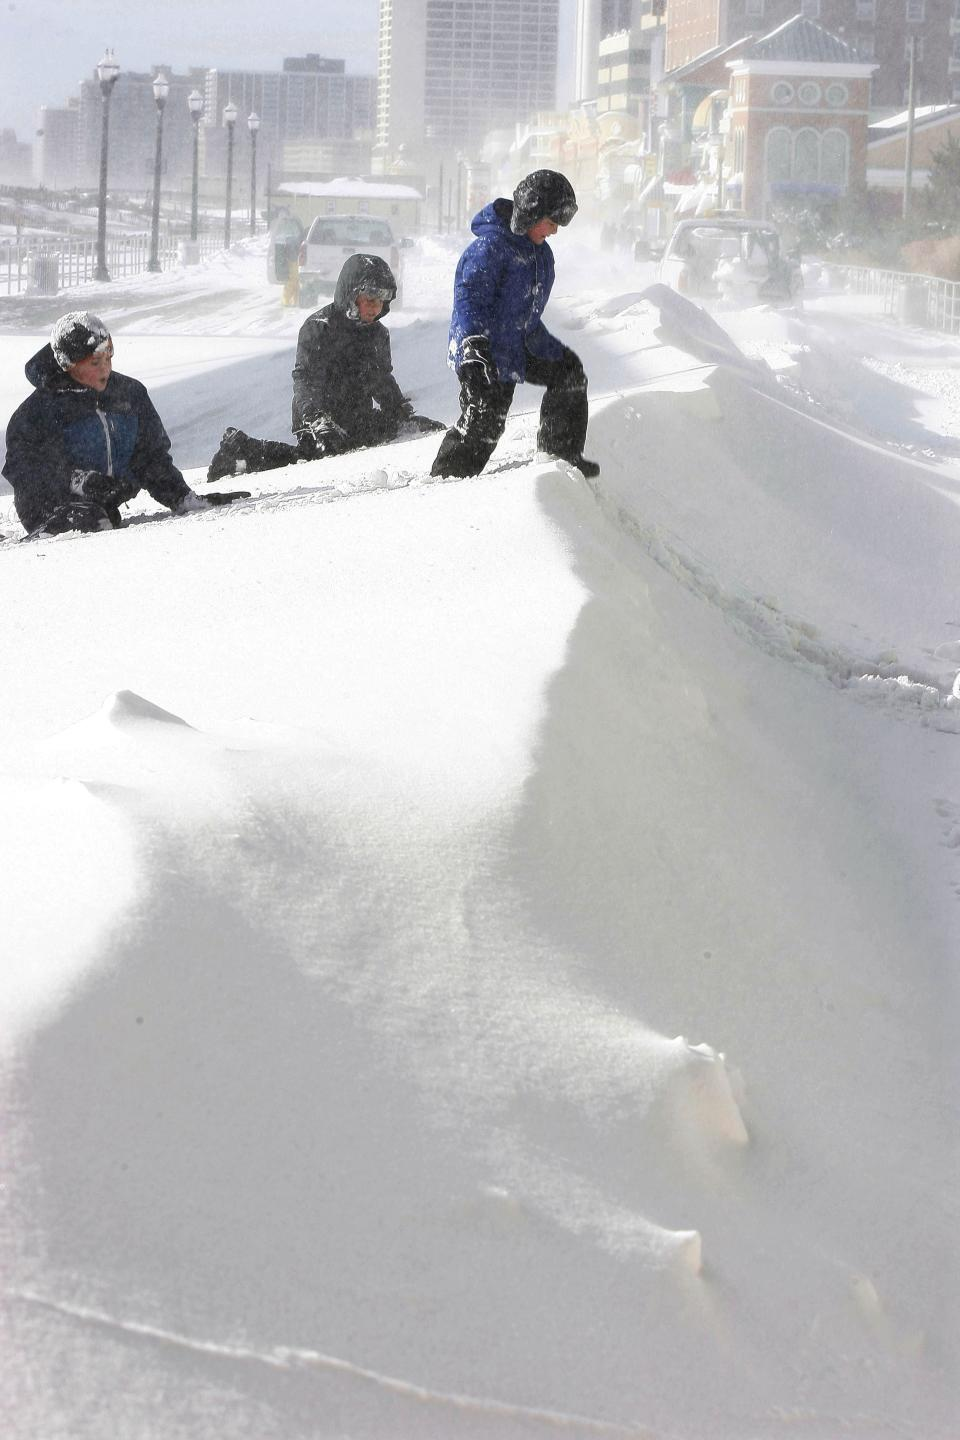 Children play on a mound of snow on The Boardwalk, Monday, Dec. 27, 2010, in Atlantic City, N.J. (AP Photo/Mel Evans)